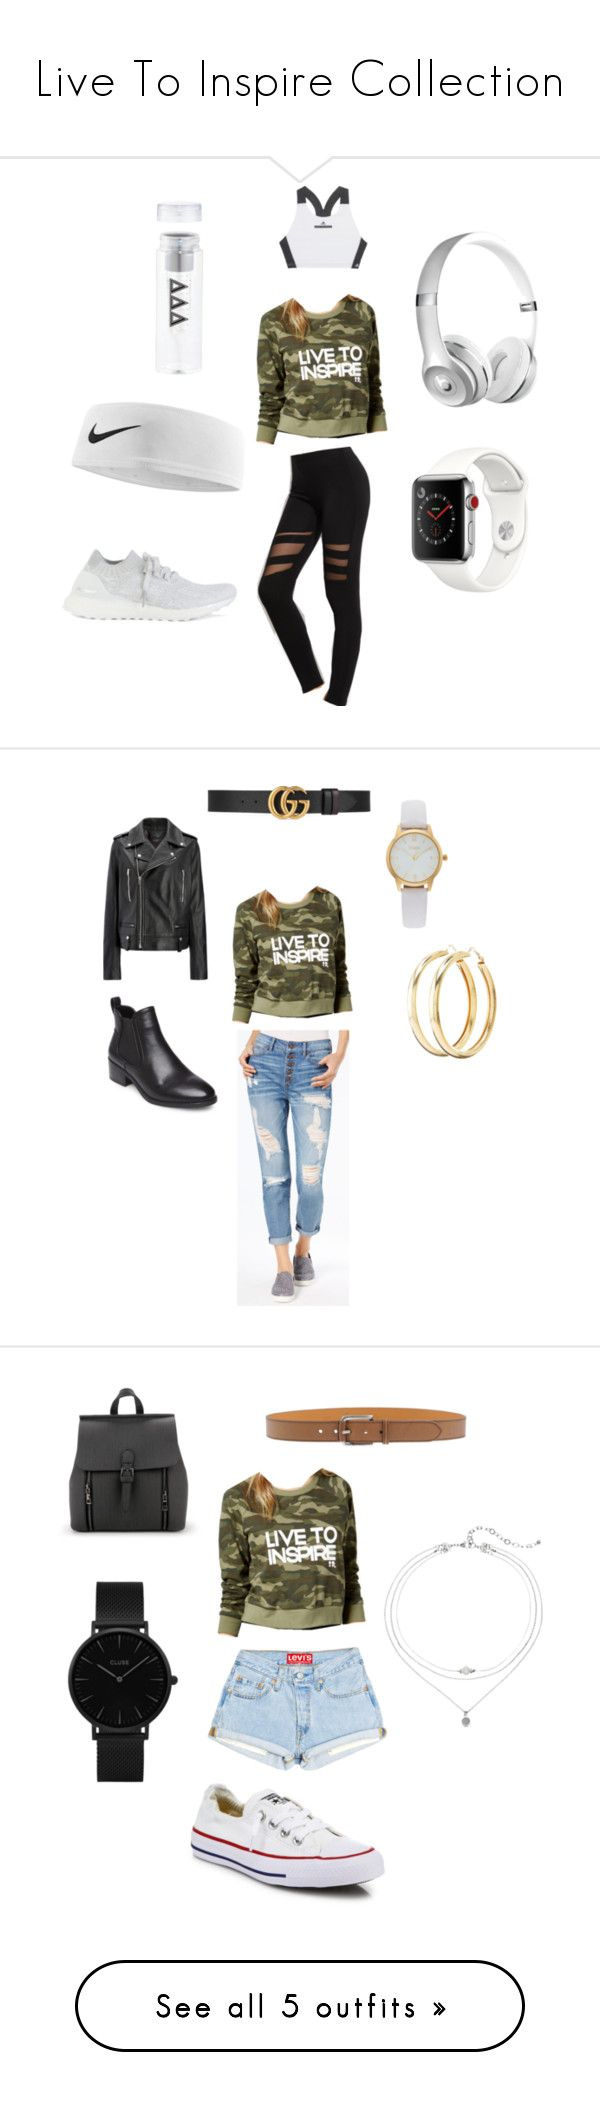 """""""Live To Inspire Collection"""" by norafilbin on Polyvore featuring adidas, Boy Meets Girl, NIKE, Apple, Rewash, Charlotte Russe, Vivani, Joseph, Steve Madden and Gucci"""